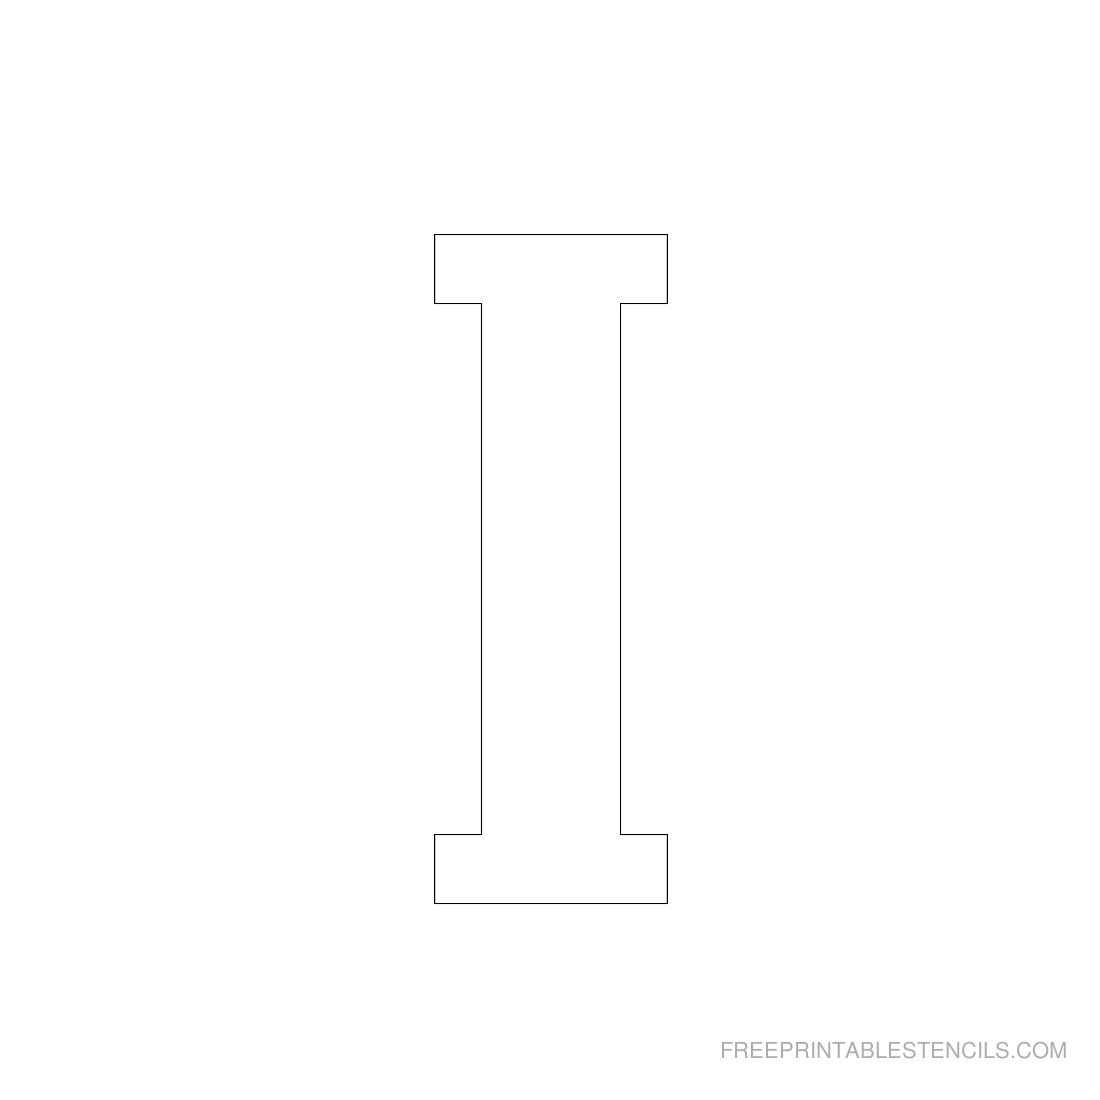 Printable 3 Inch Letter Stencils A-Z | Free Printable Stencils - Free Printable 4 Inch Block Letters